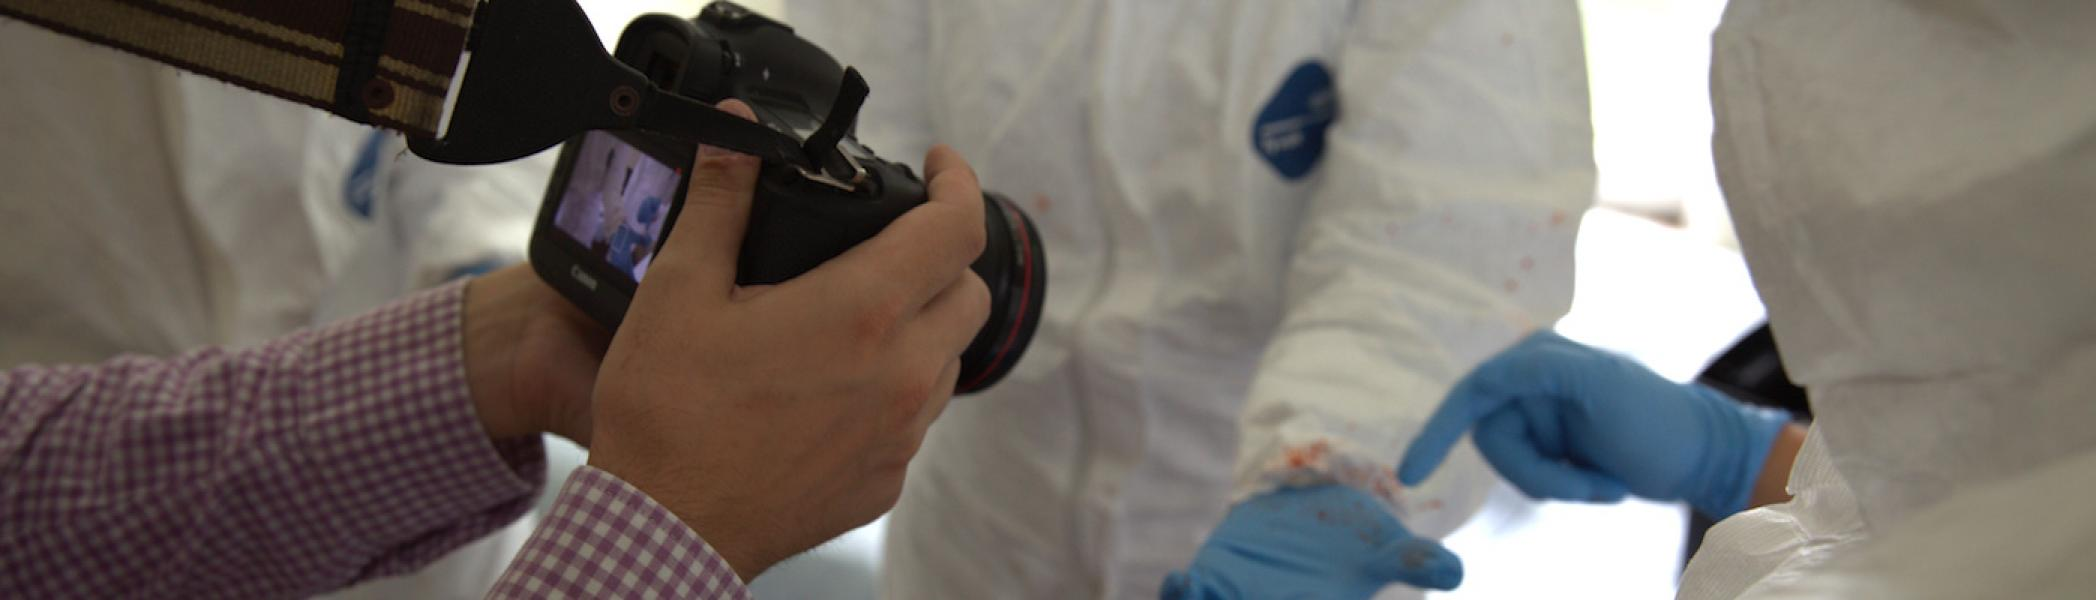 Someone taking a photo of blood on a glove